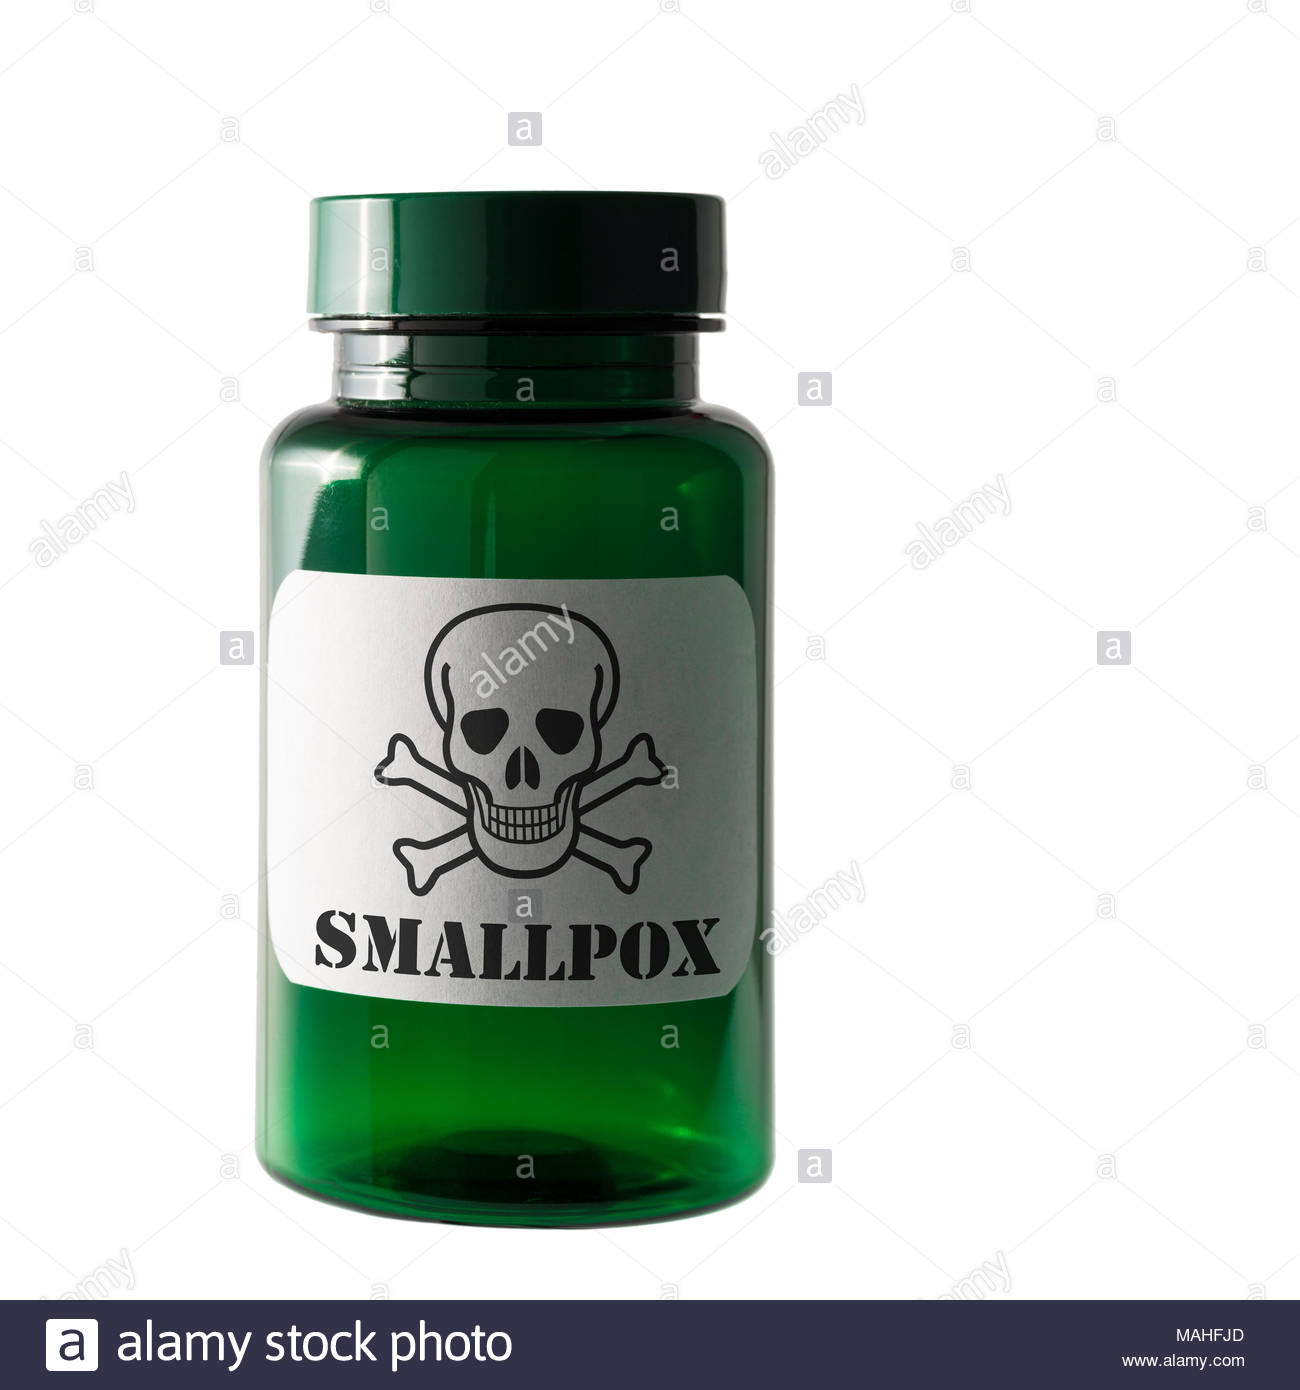 Smallpox. Dangerous substance label, Dorset, England, UK Stock Photo